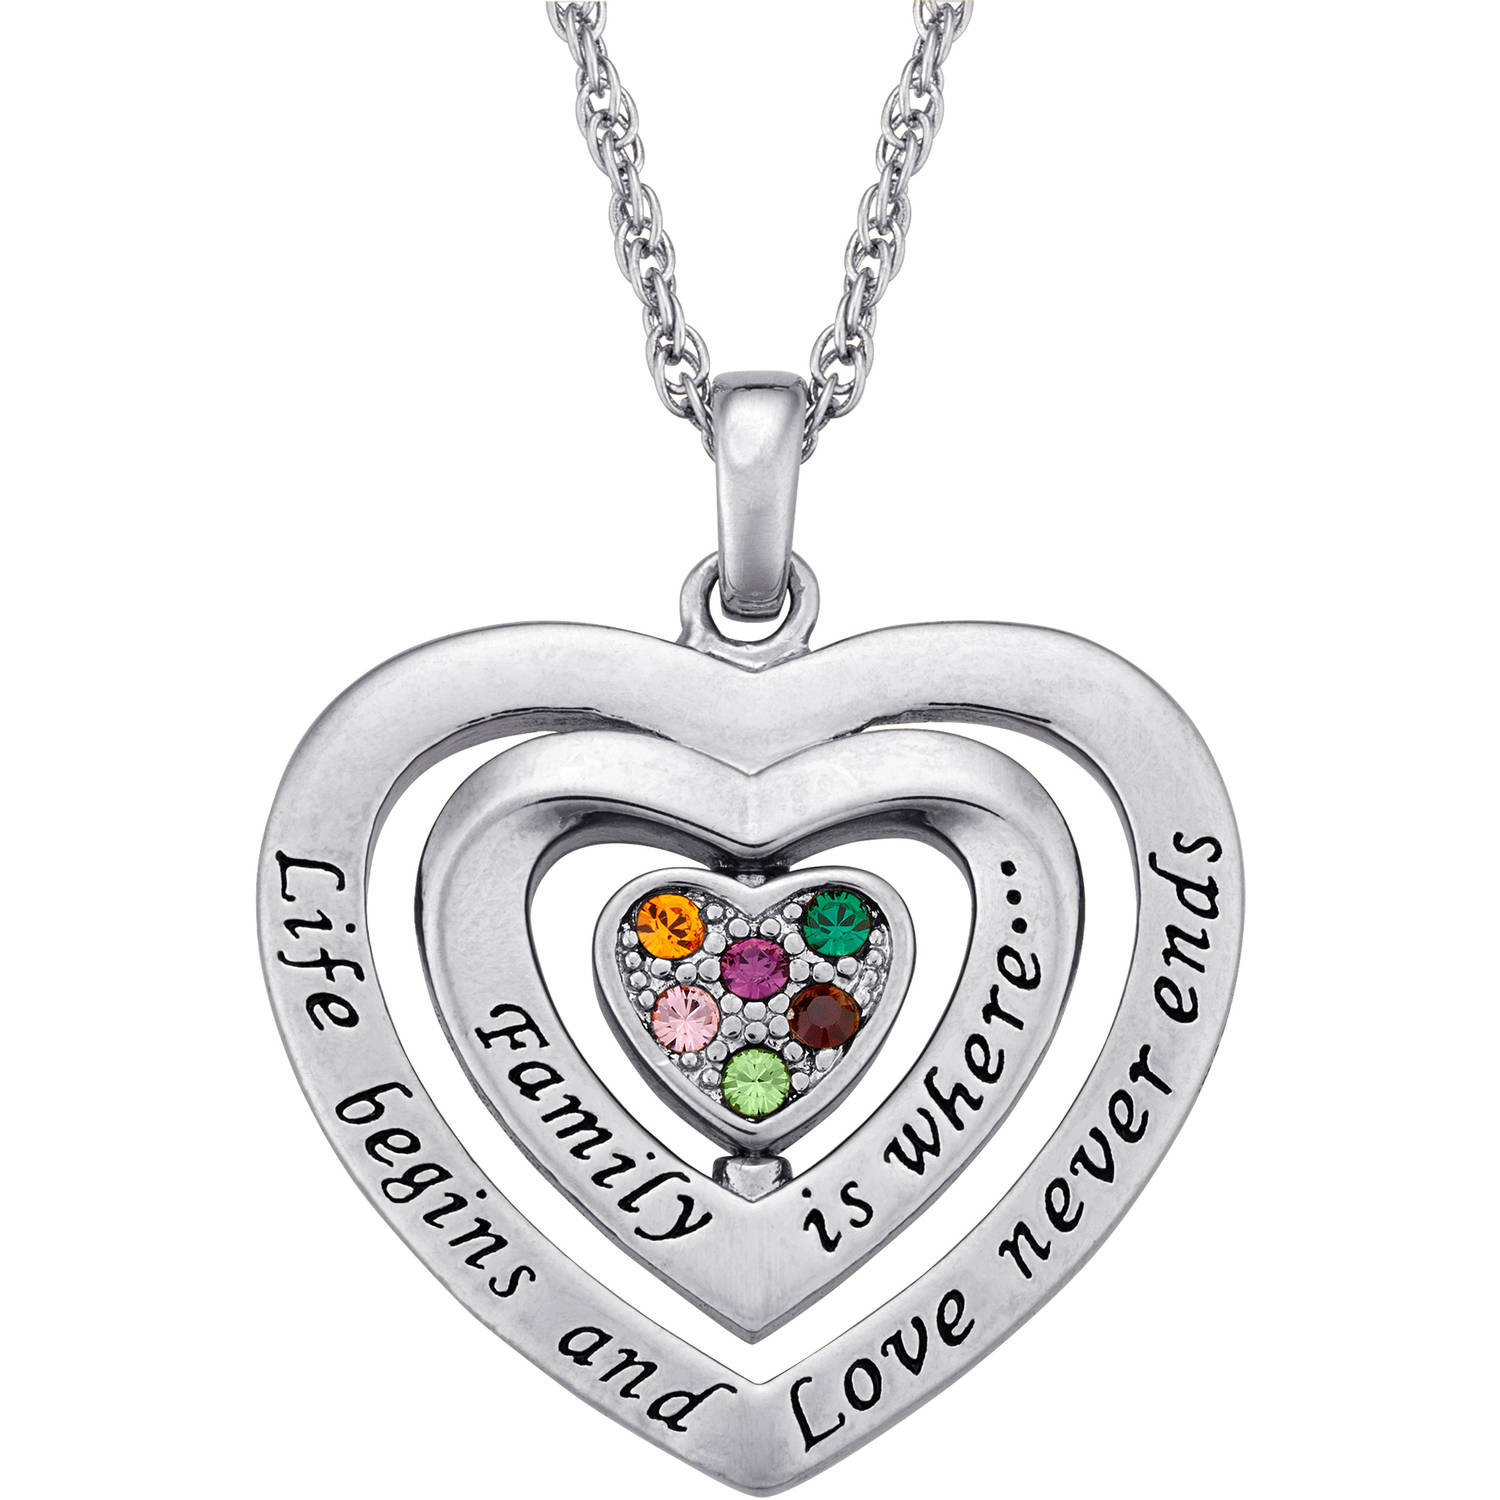 Family Jewelry Personalized Mother's Mom Birthstone Swivel Heart Silver-Tone Pendant